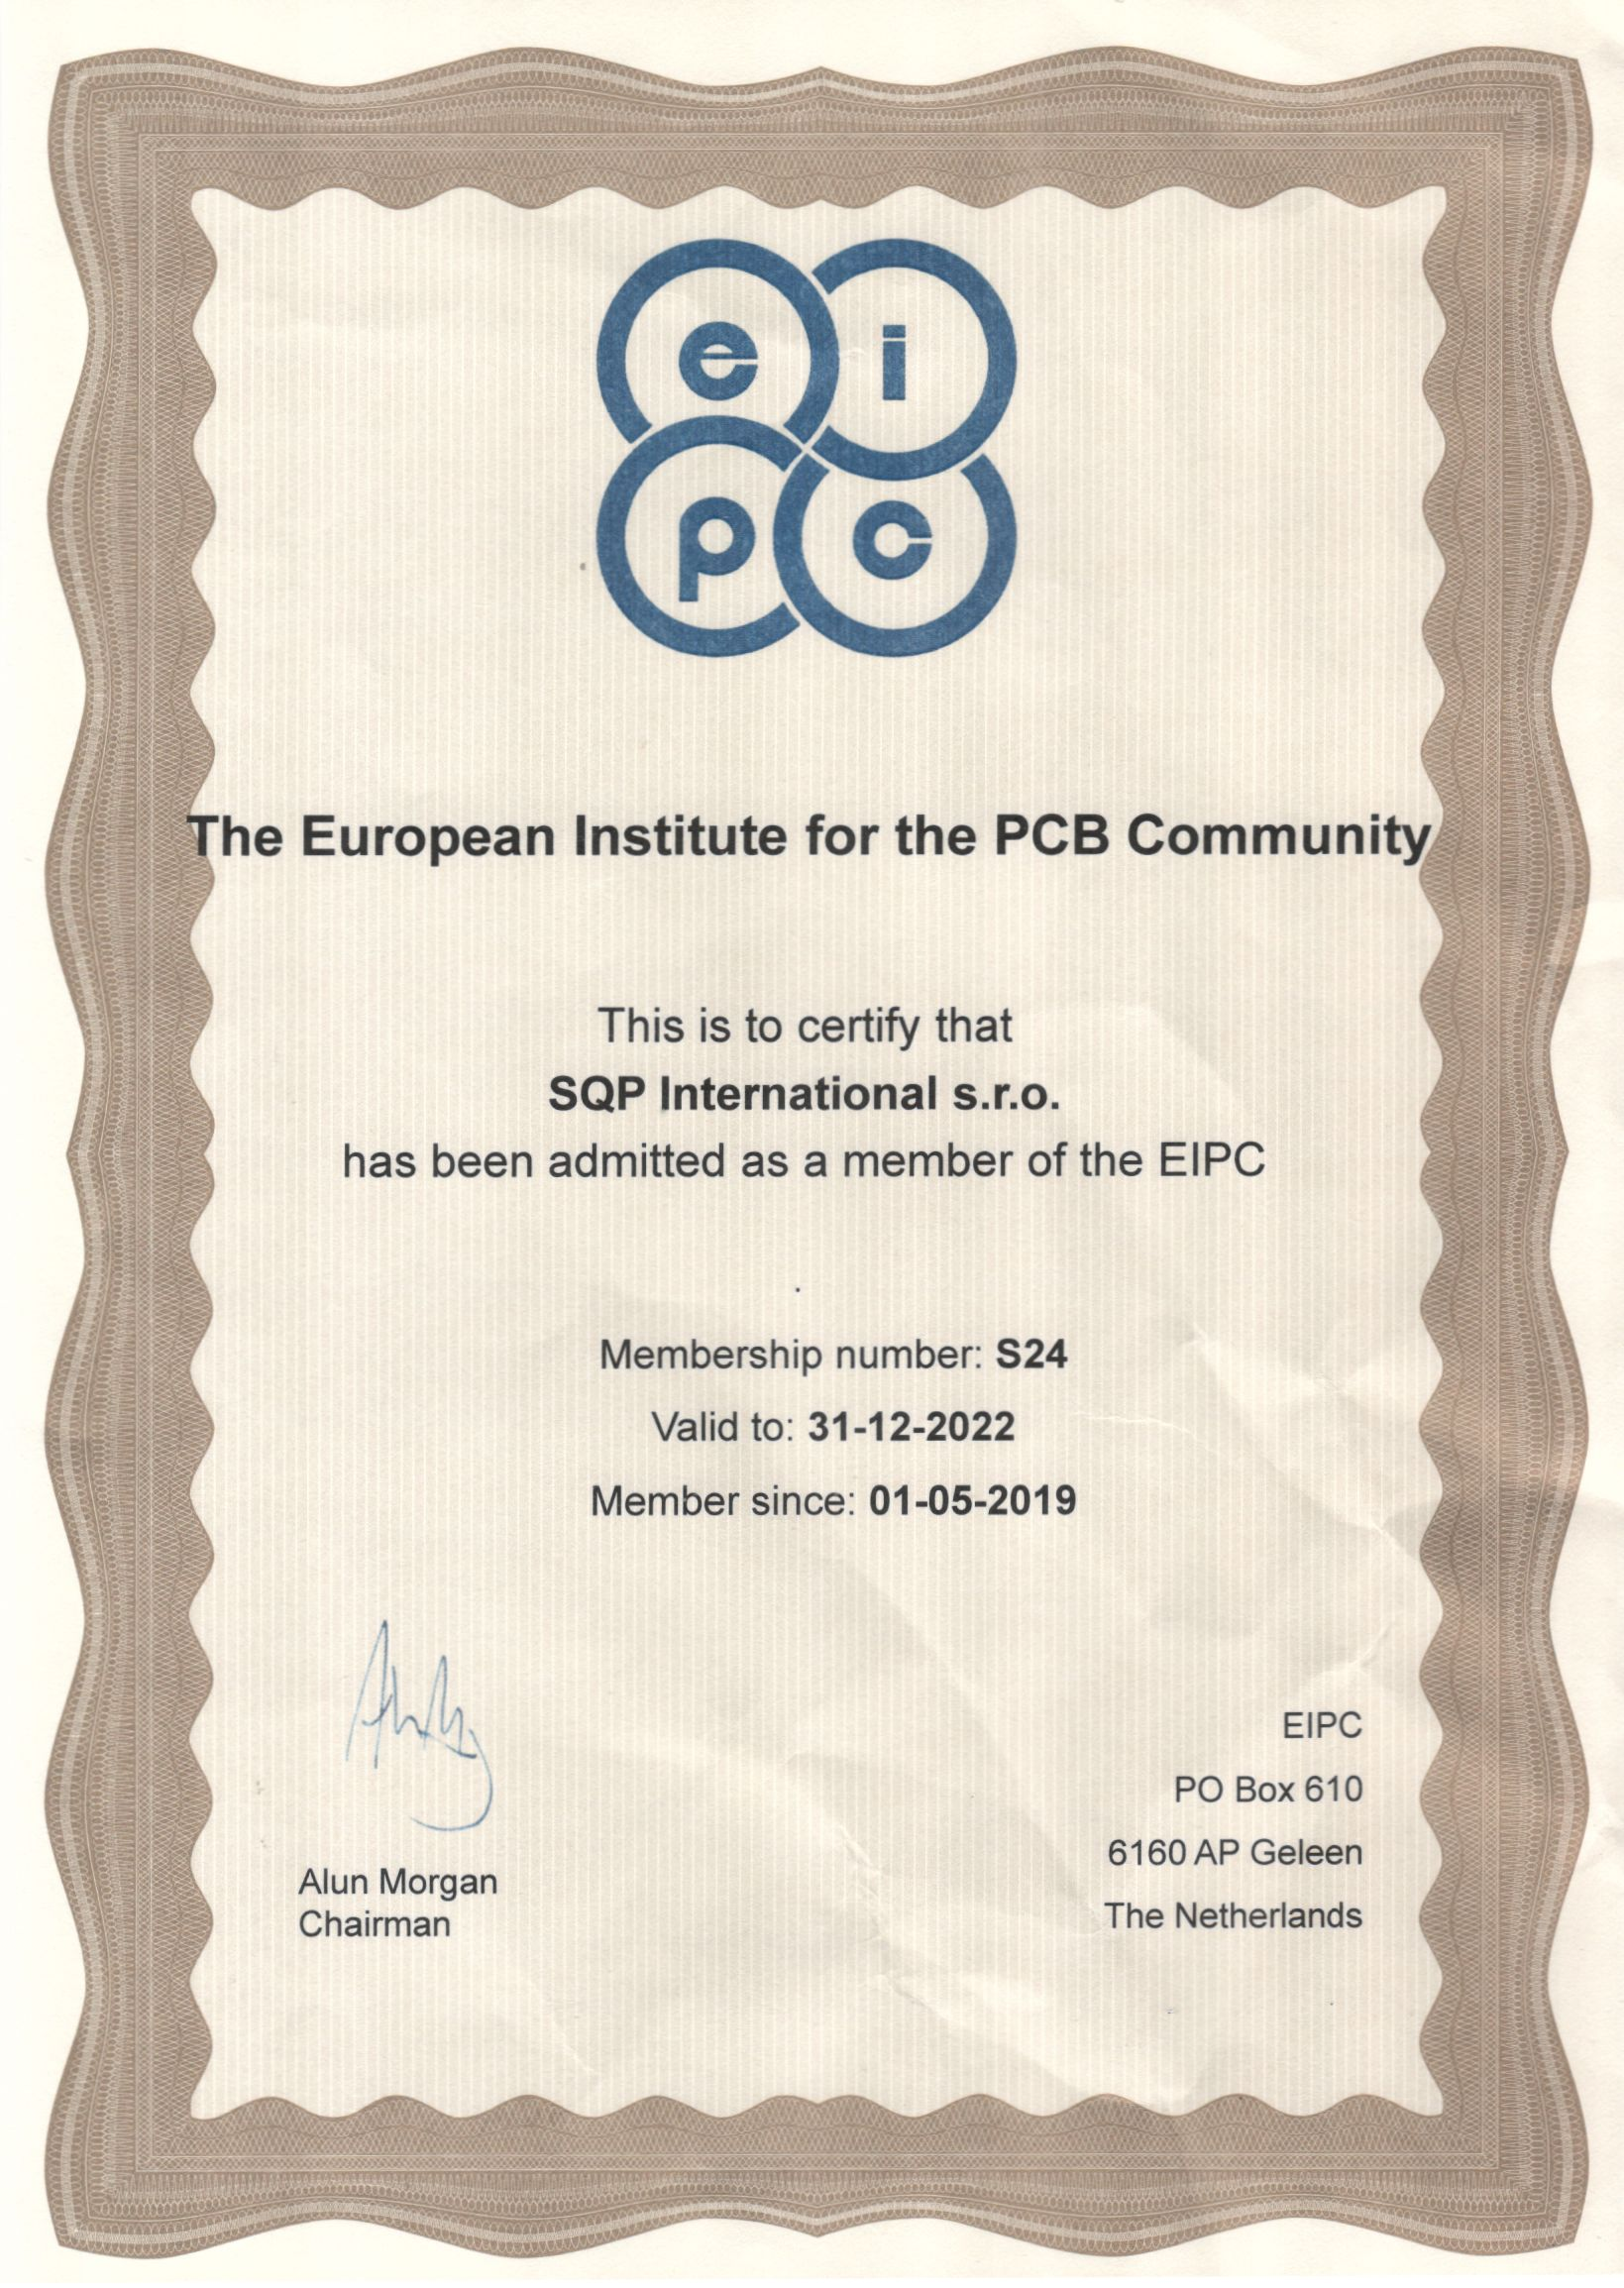 SQP International s.r.o. is a member of the EIPC